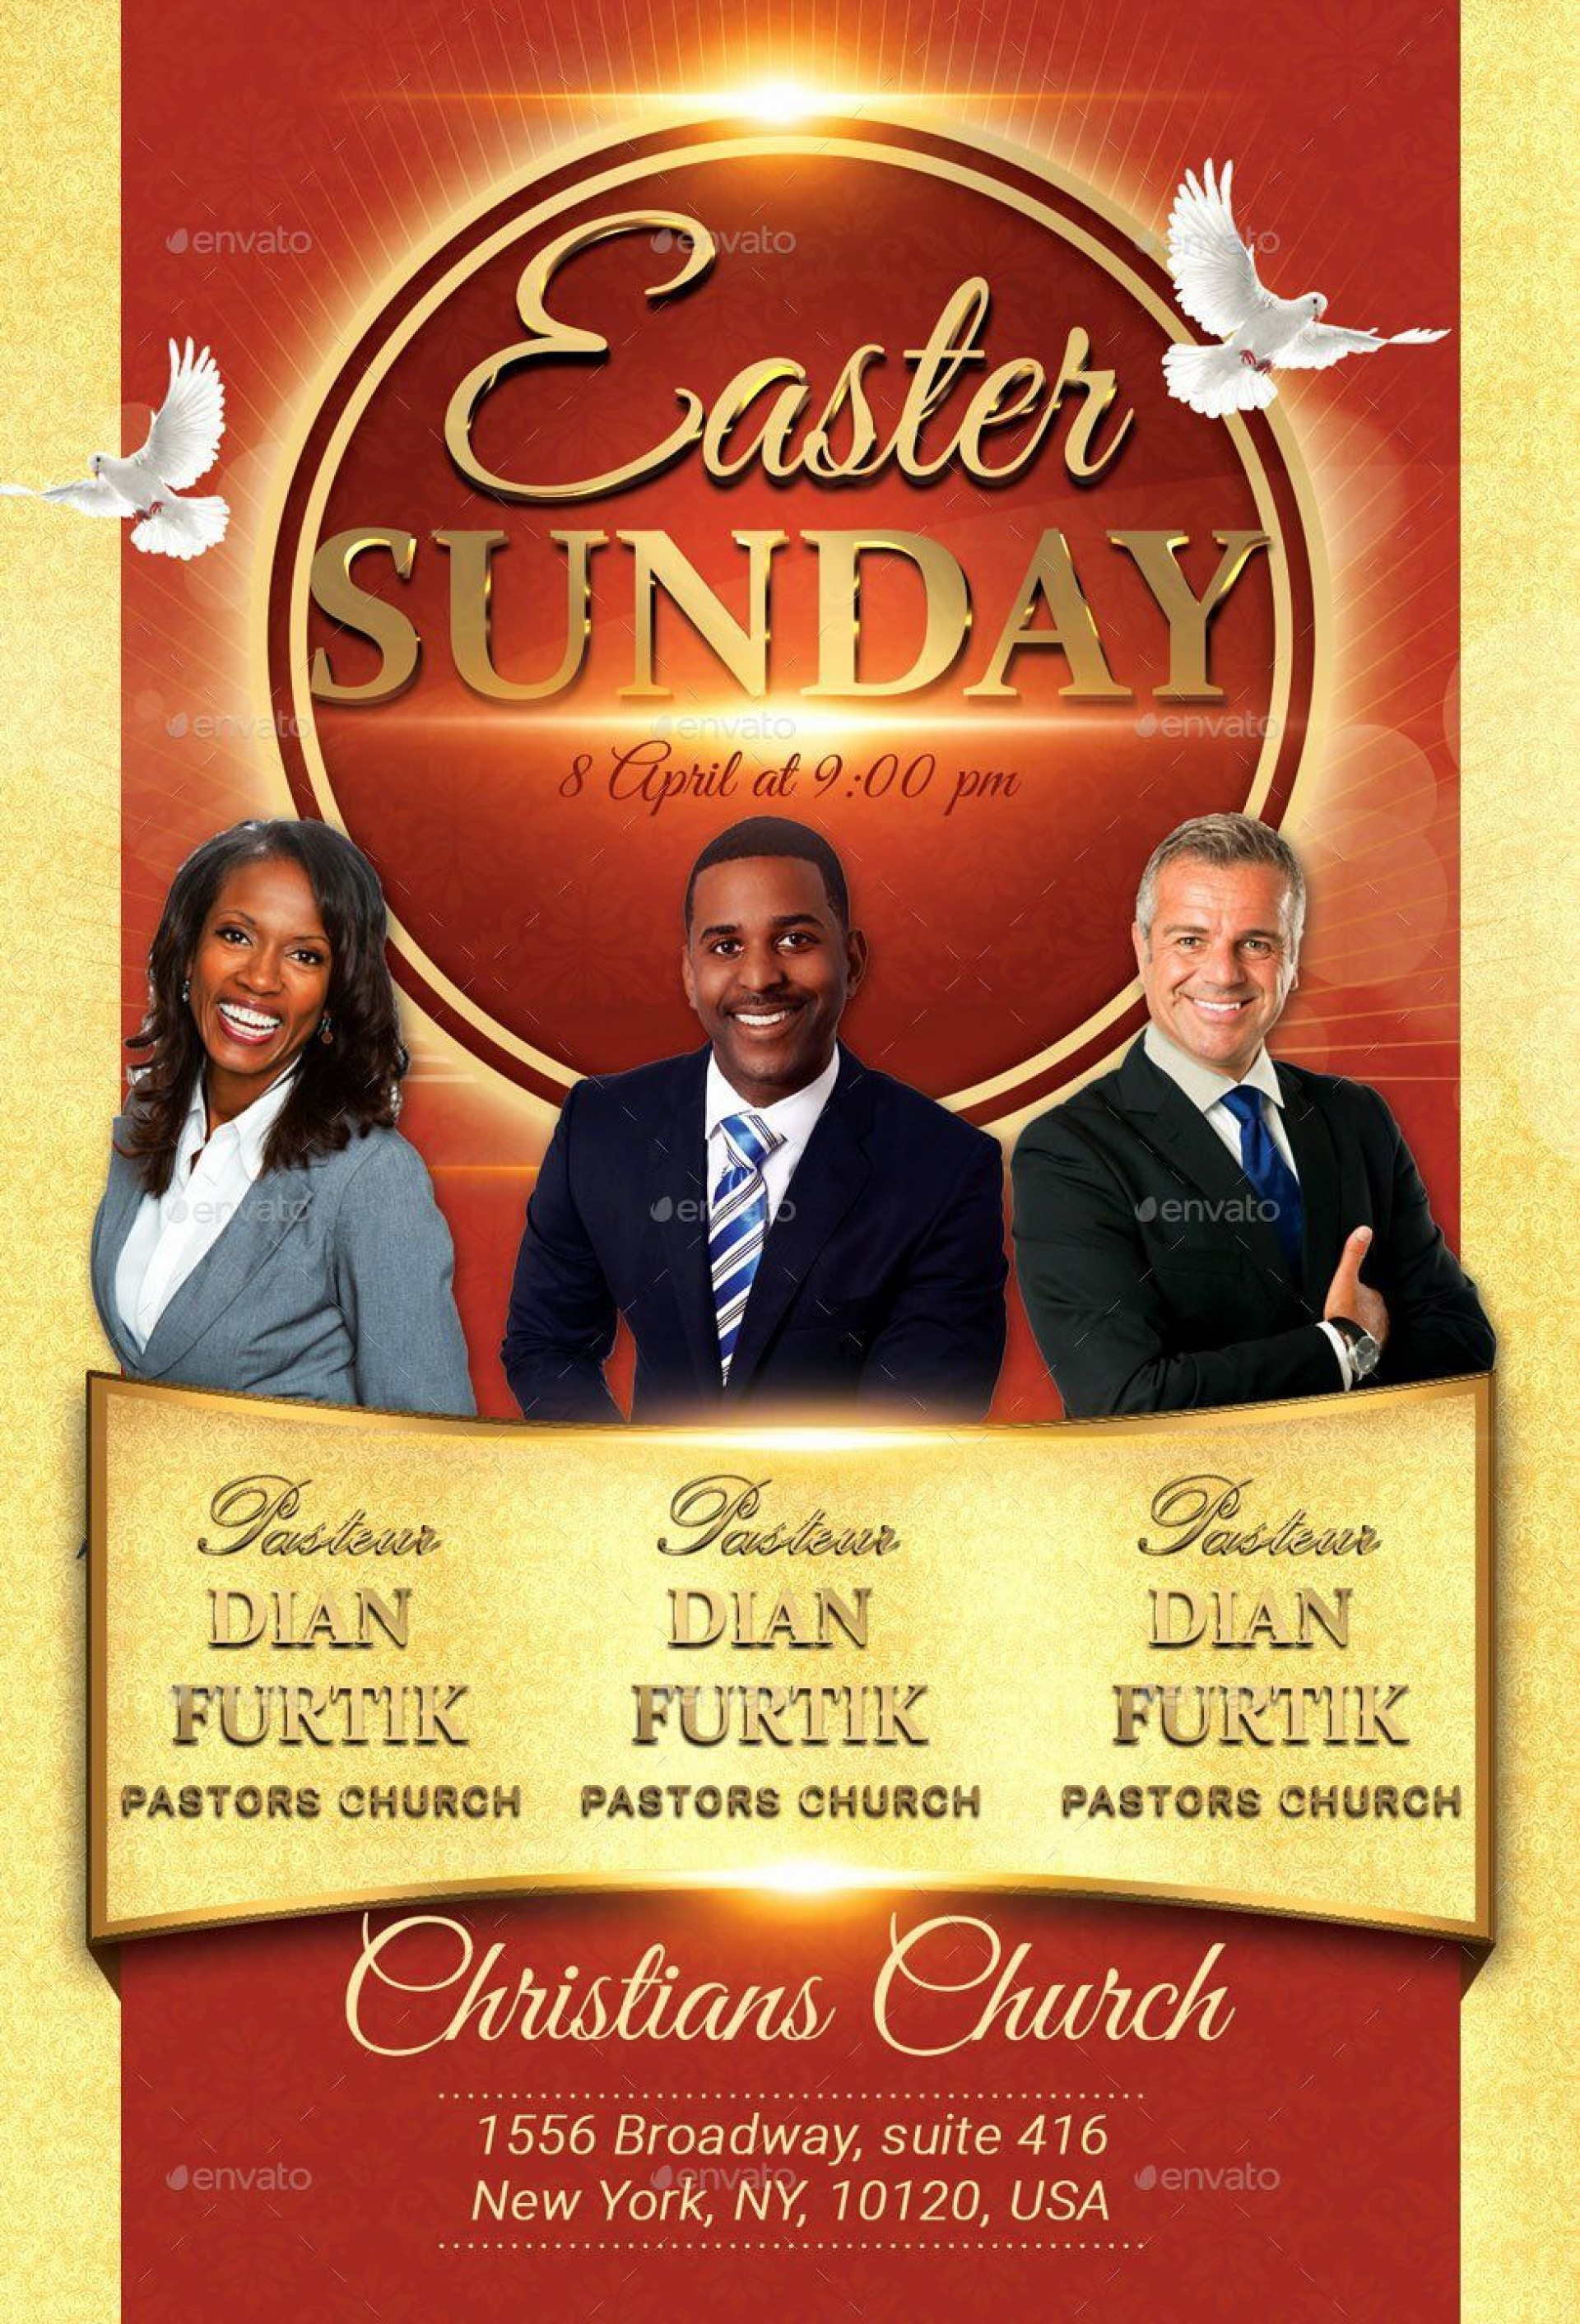 004 Striking Church Flyer Template Free Concept  Easter Anniversary Conference Psd1920